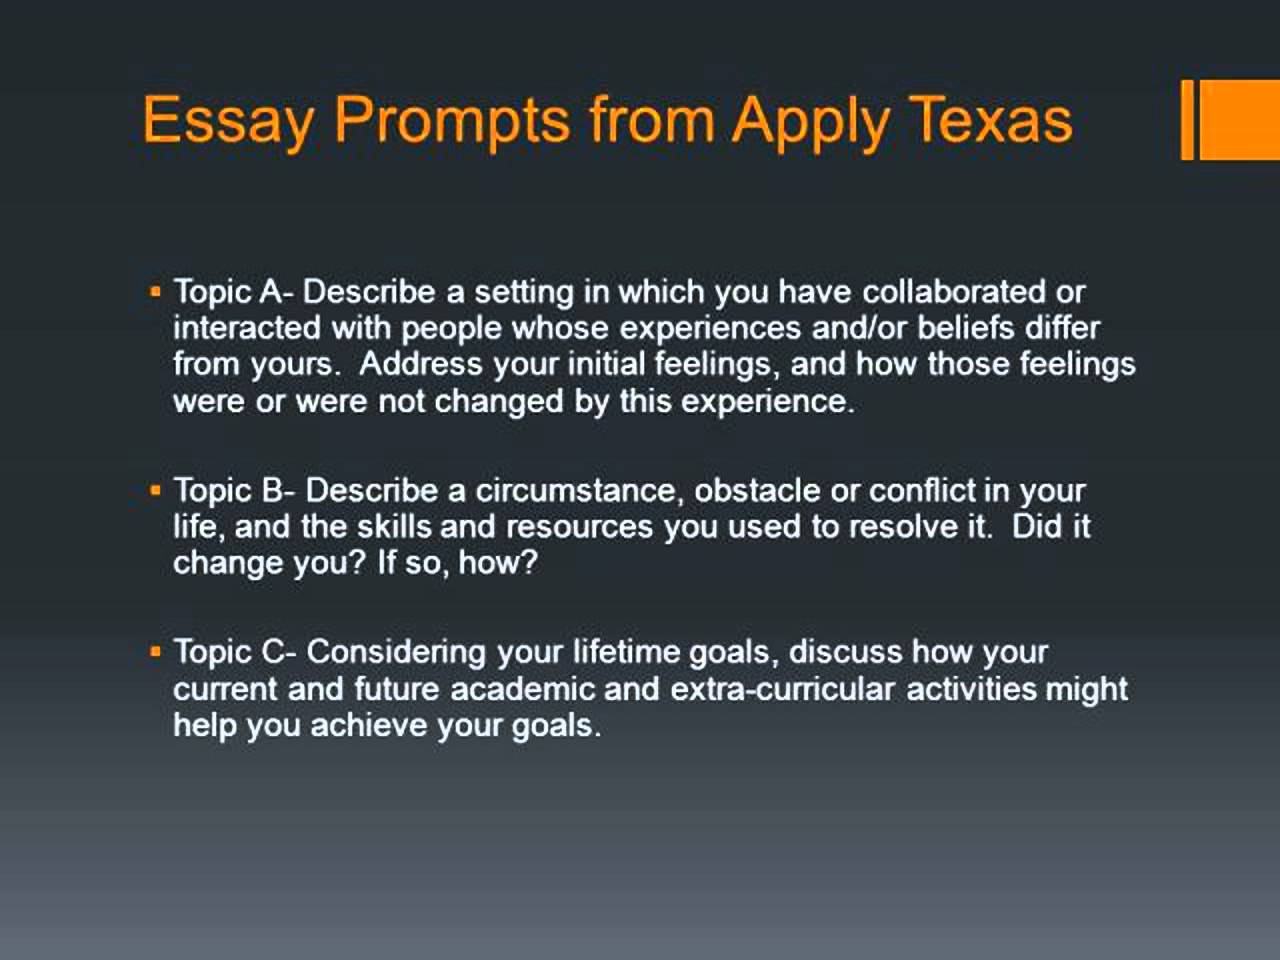 002 Apply Texas Essay Prompts Youtube Topic Examples Maxresde Example Wonderful Applytexas 2018 Prompt C Full